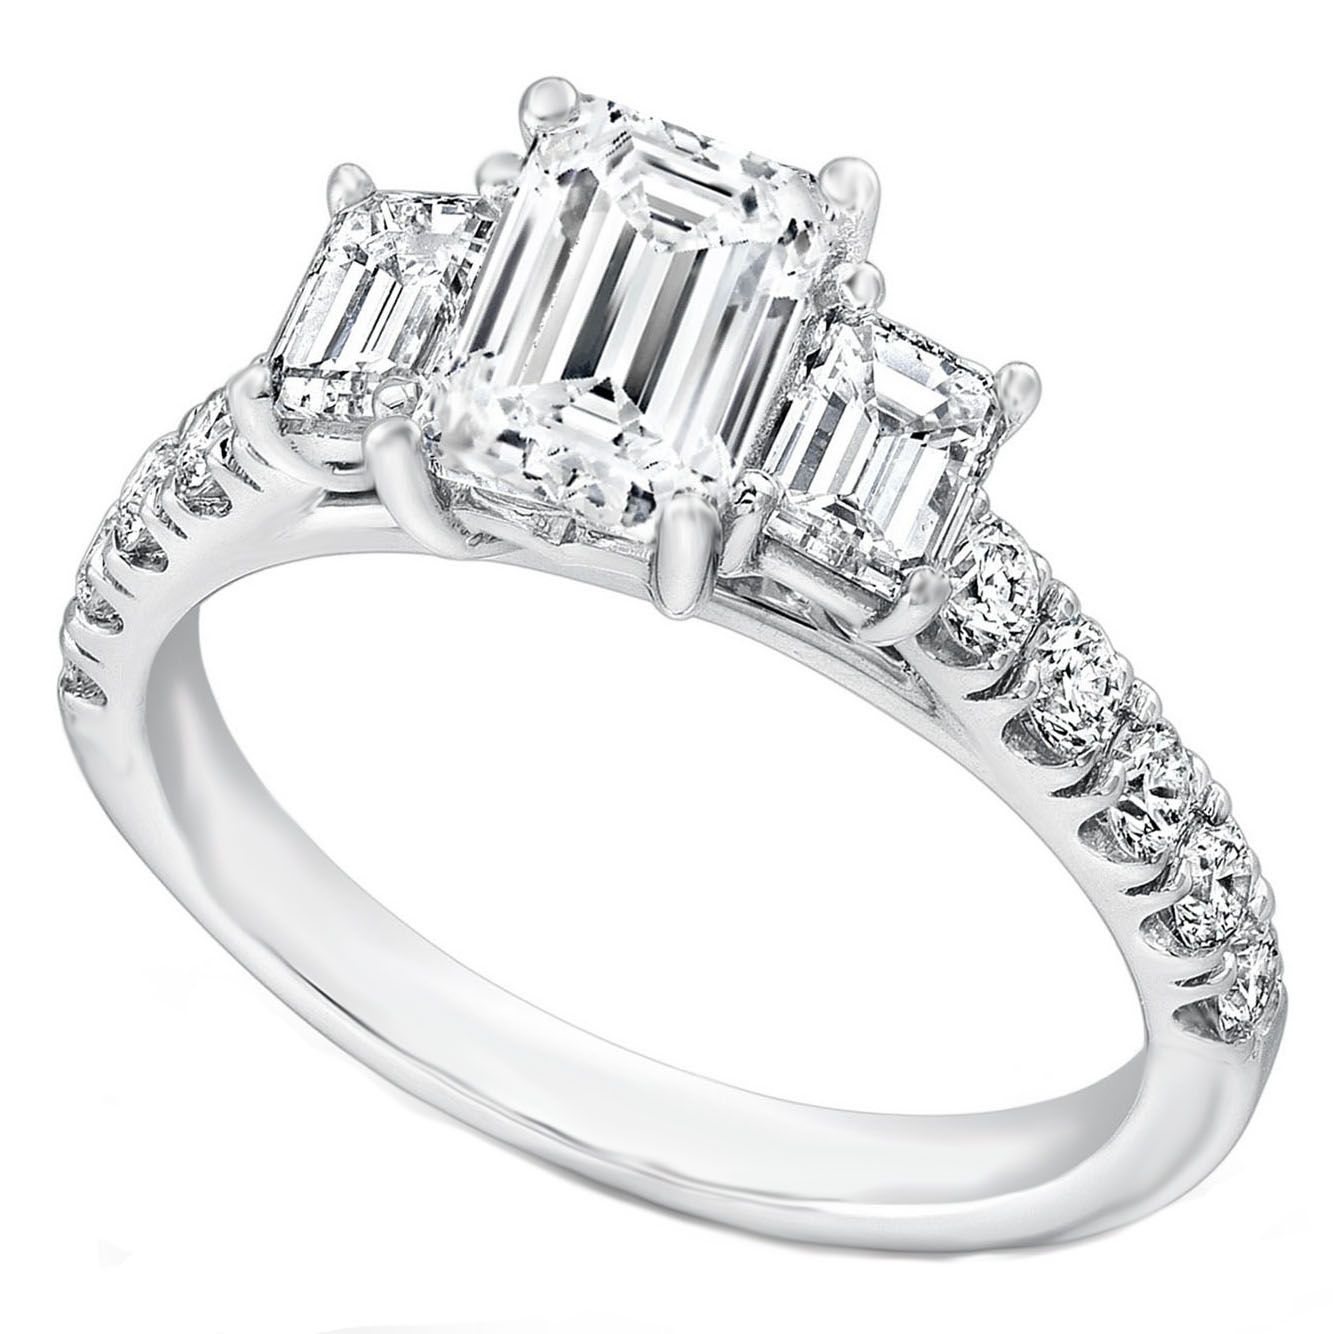 Engagement Ring  Three Stone Emerald Cut Diamond Cathedral Engagement Ring  Pave Band In 14k White